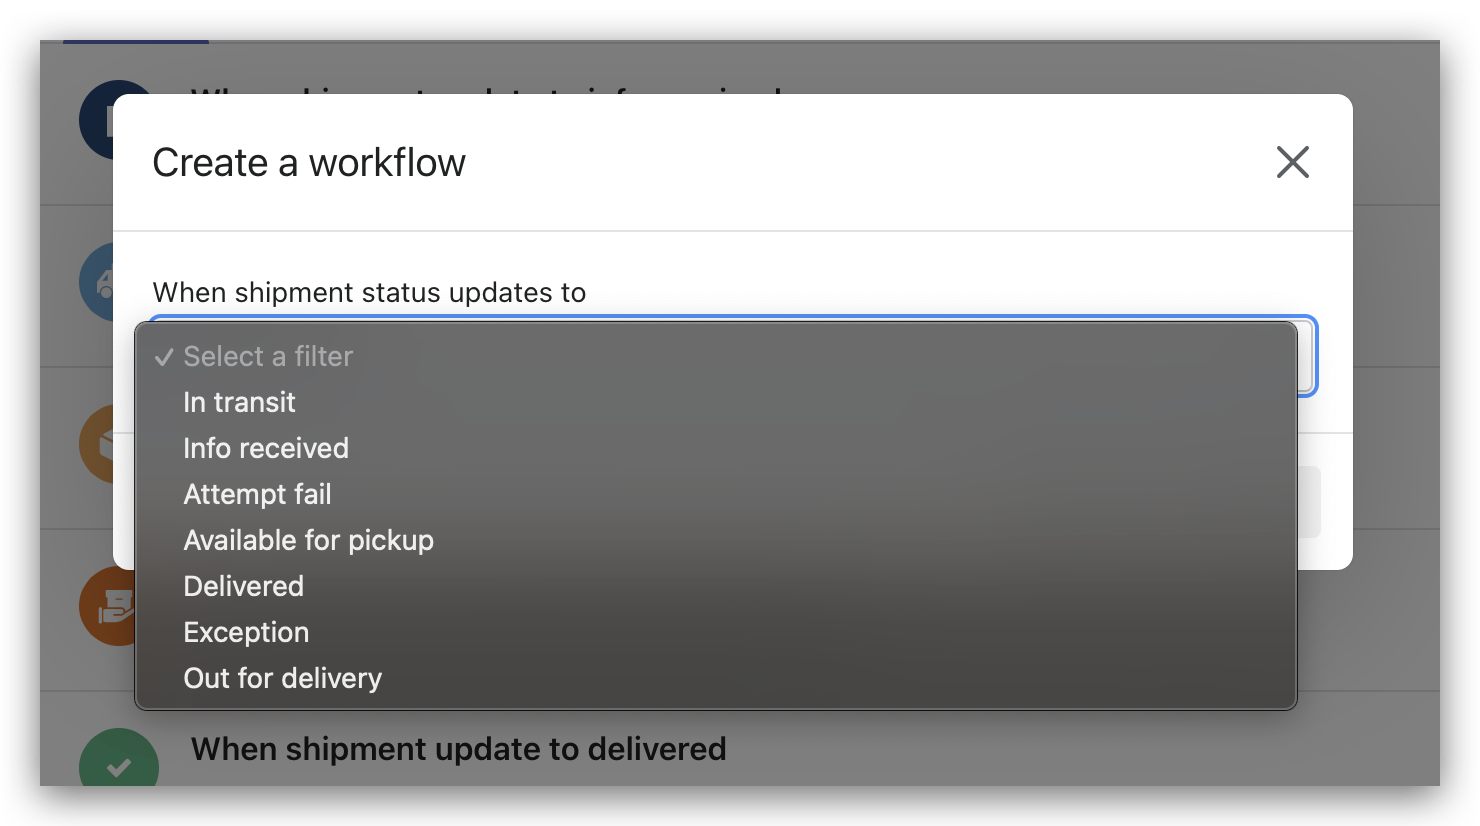 Send Tracking Update Notifications Based on Customized Automated Workflows